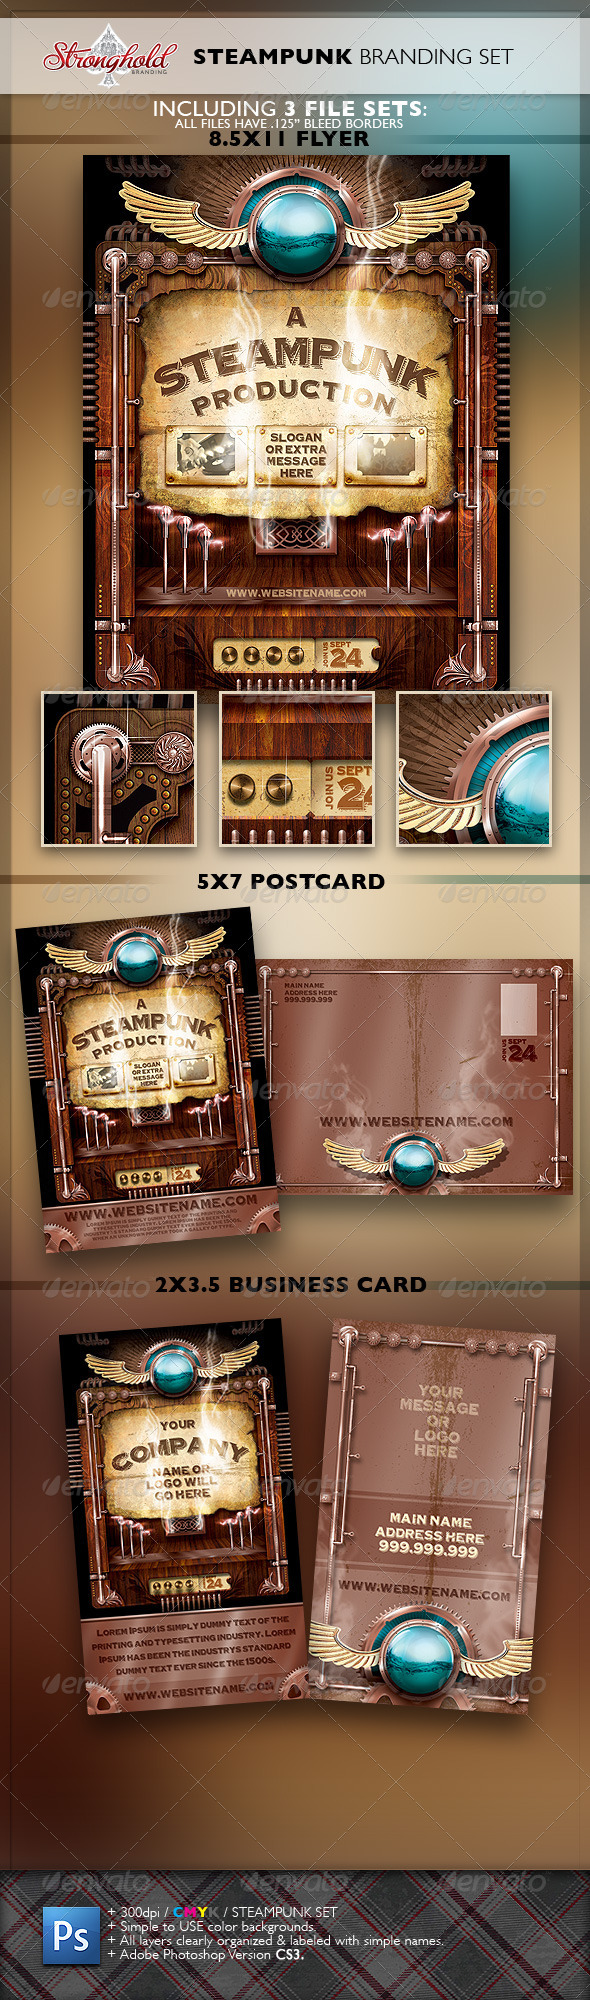 Vintage Steampunk Brand Flyer Set - Stationery Print Templates